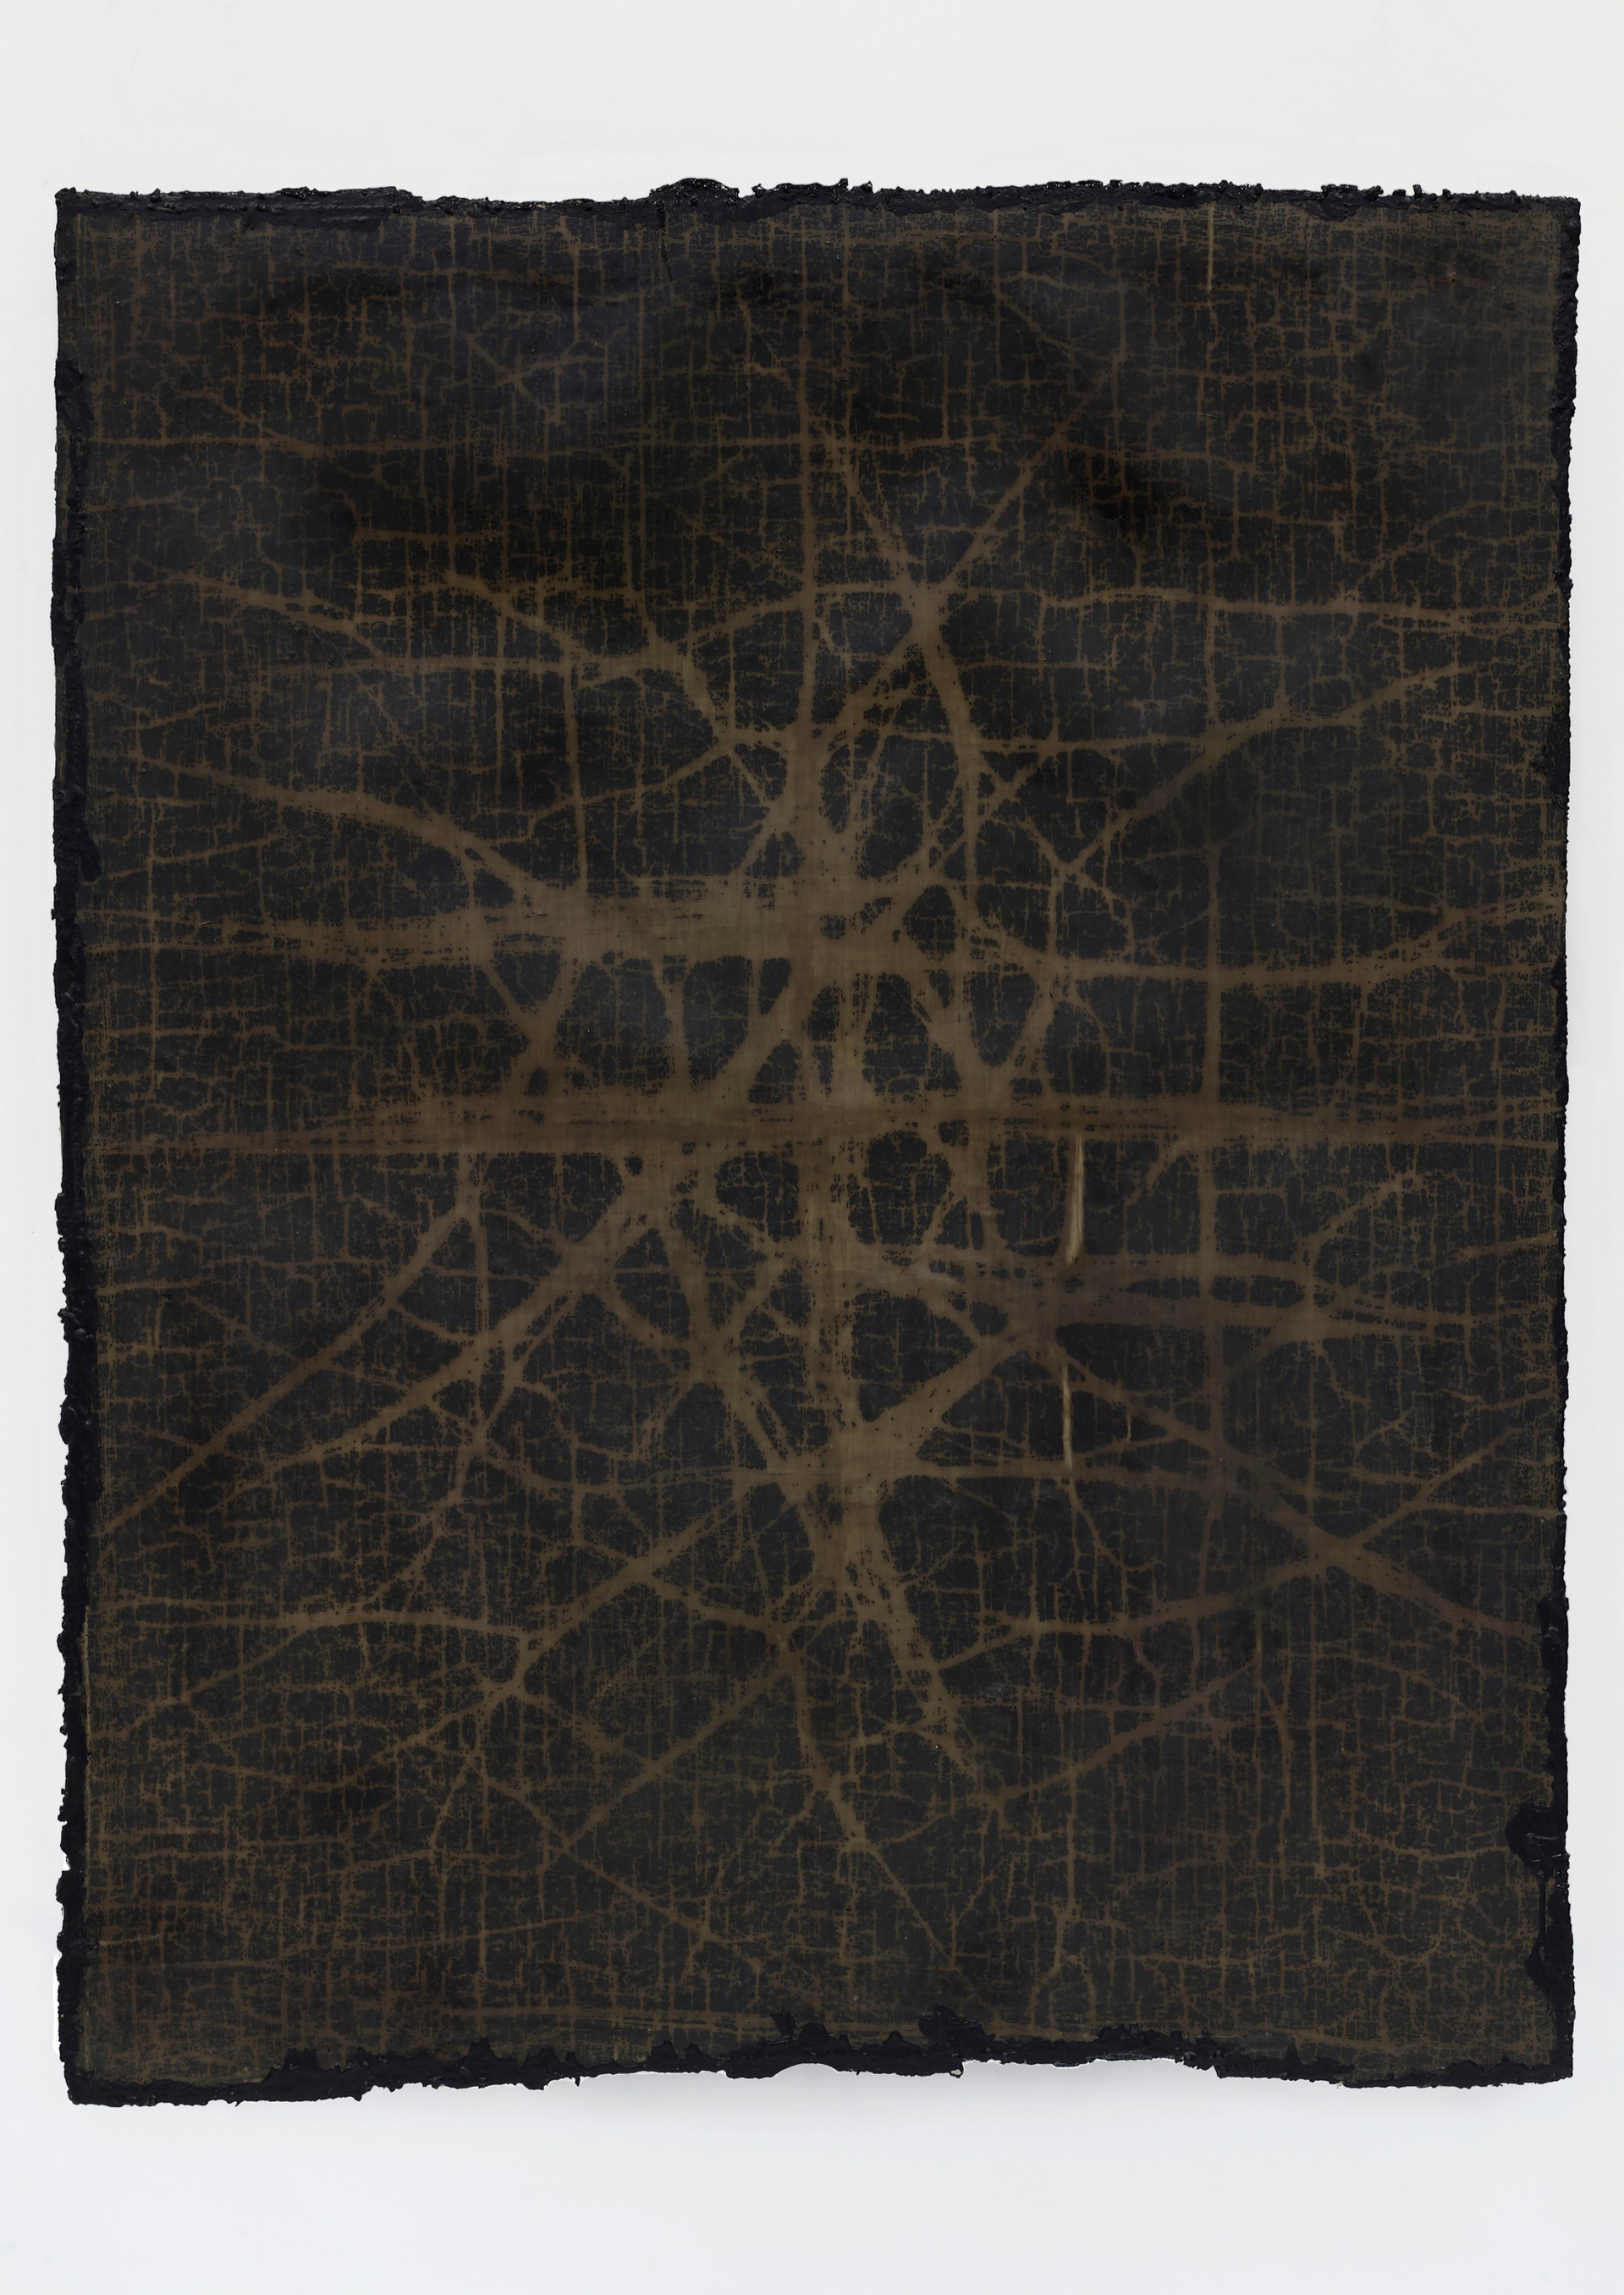 Helmut Lang  network #2, 2019 Cotton, wax, resin, and tar on canvas  67 x 52 1/4 x 1 1/2 inches